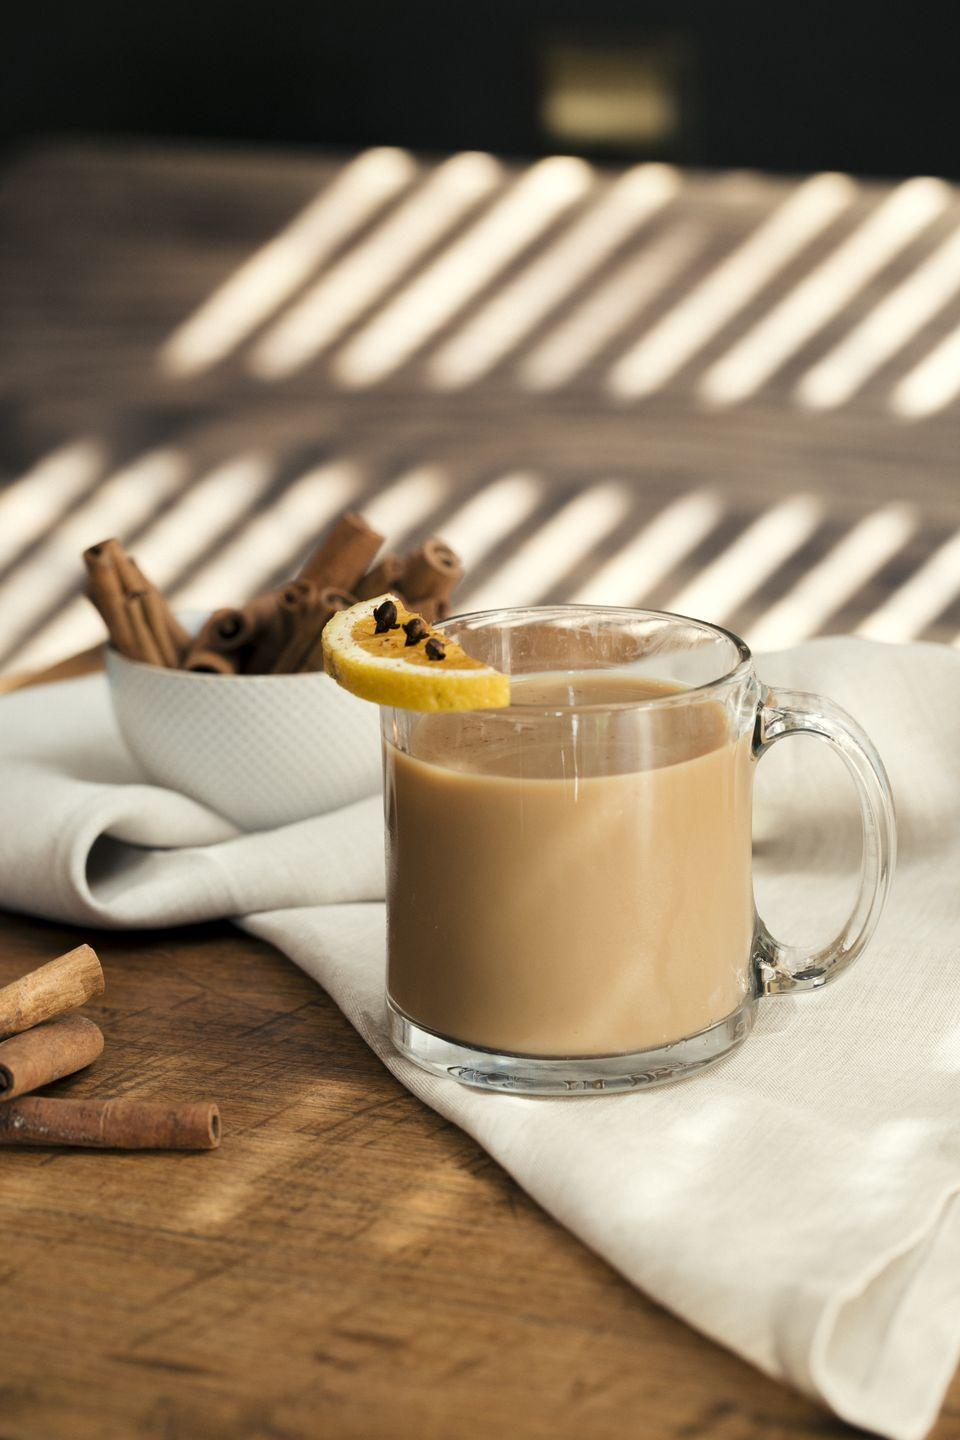 """<p>Snuggle up in bed on a Sunday morning with this creamy drink. Or serve it to warm up after the hayride.<br><strong><br></strong><strong>Ingredients:</strong></p><p>2 oz. <a href=""""https://drizly.com/liquor/liqueur/baileys-irish-cream-pumpkin-spice/p58358?is_autocomplete=true"""" rel=""""nofollow noopener"""" target=""""_blank"""" data-ylk=""""slk:Baileys Pumpkin Spice"""" class=""""link rapid-noclick-resp"""">Baileys Pumpkin Spice</a><br>1/2 oz. Cinnamon Syrup<br>Hot Apple Cider to Top<br>Orange Wedge and Cloves for Garnish</p><p><strong>Directions:</strong></p><p>Combine Baileys Pumpkin Spice and cinnamon syrup into a cocktail shaker. Shake well. Strain contents into a coffee mug and top with hot apple cider. Garnish with orange wedge and cloves.</p>"""